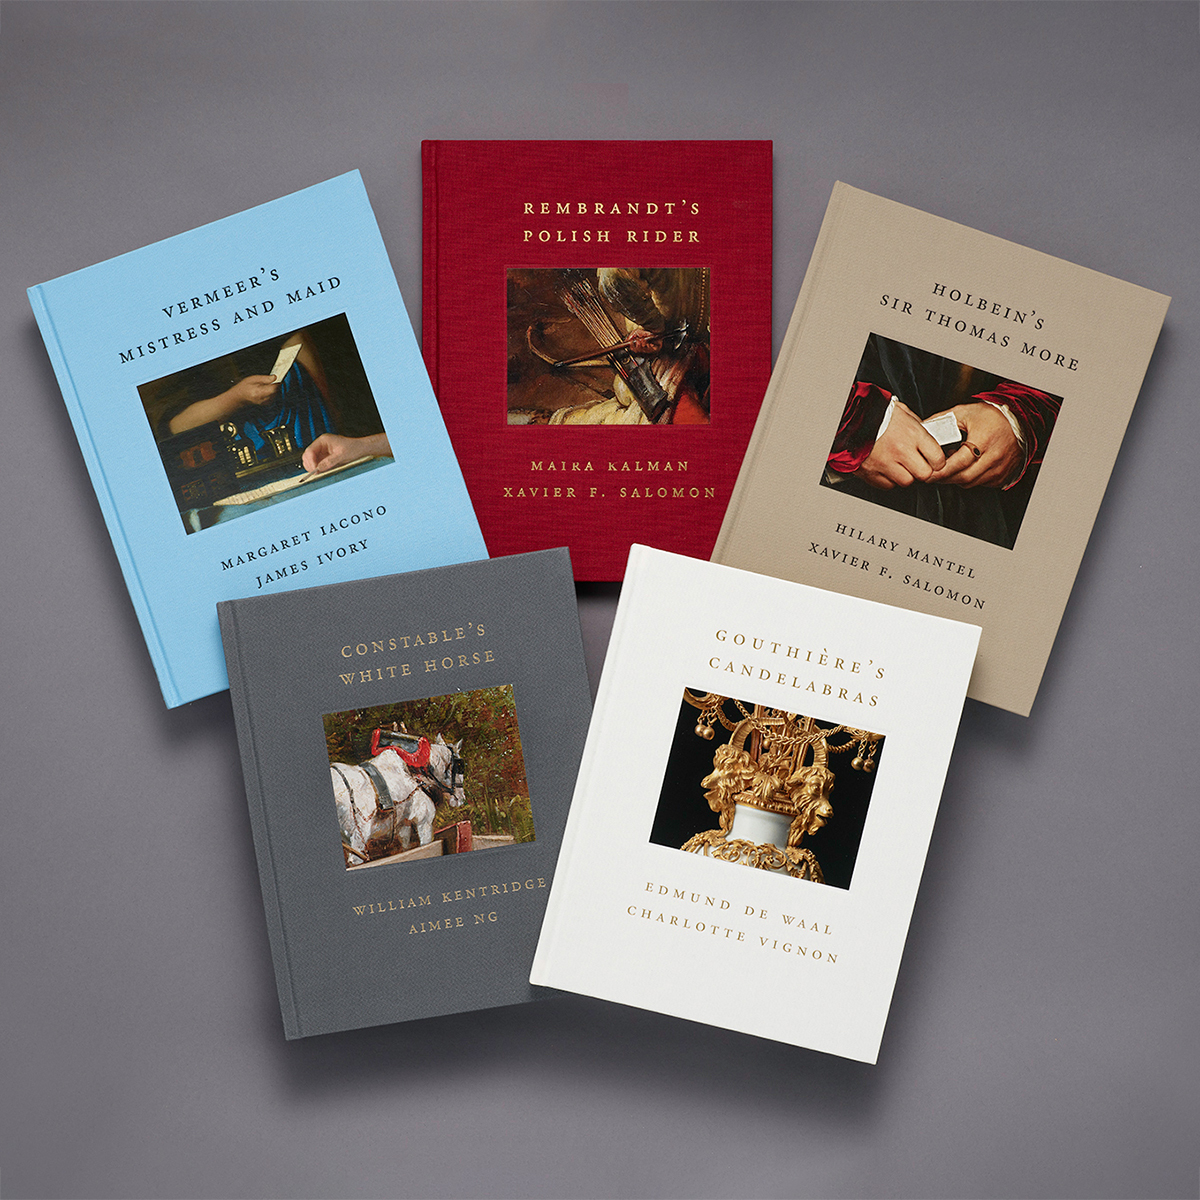 Photograph of Frick Diptych book series